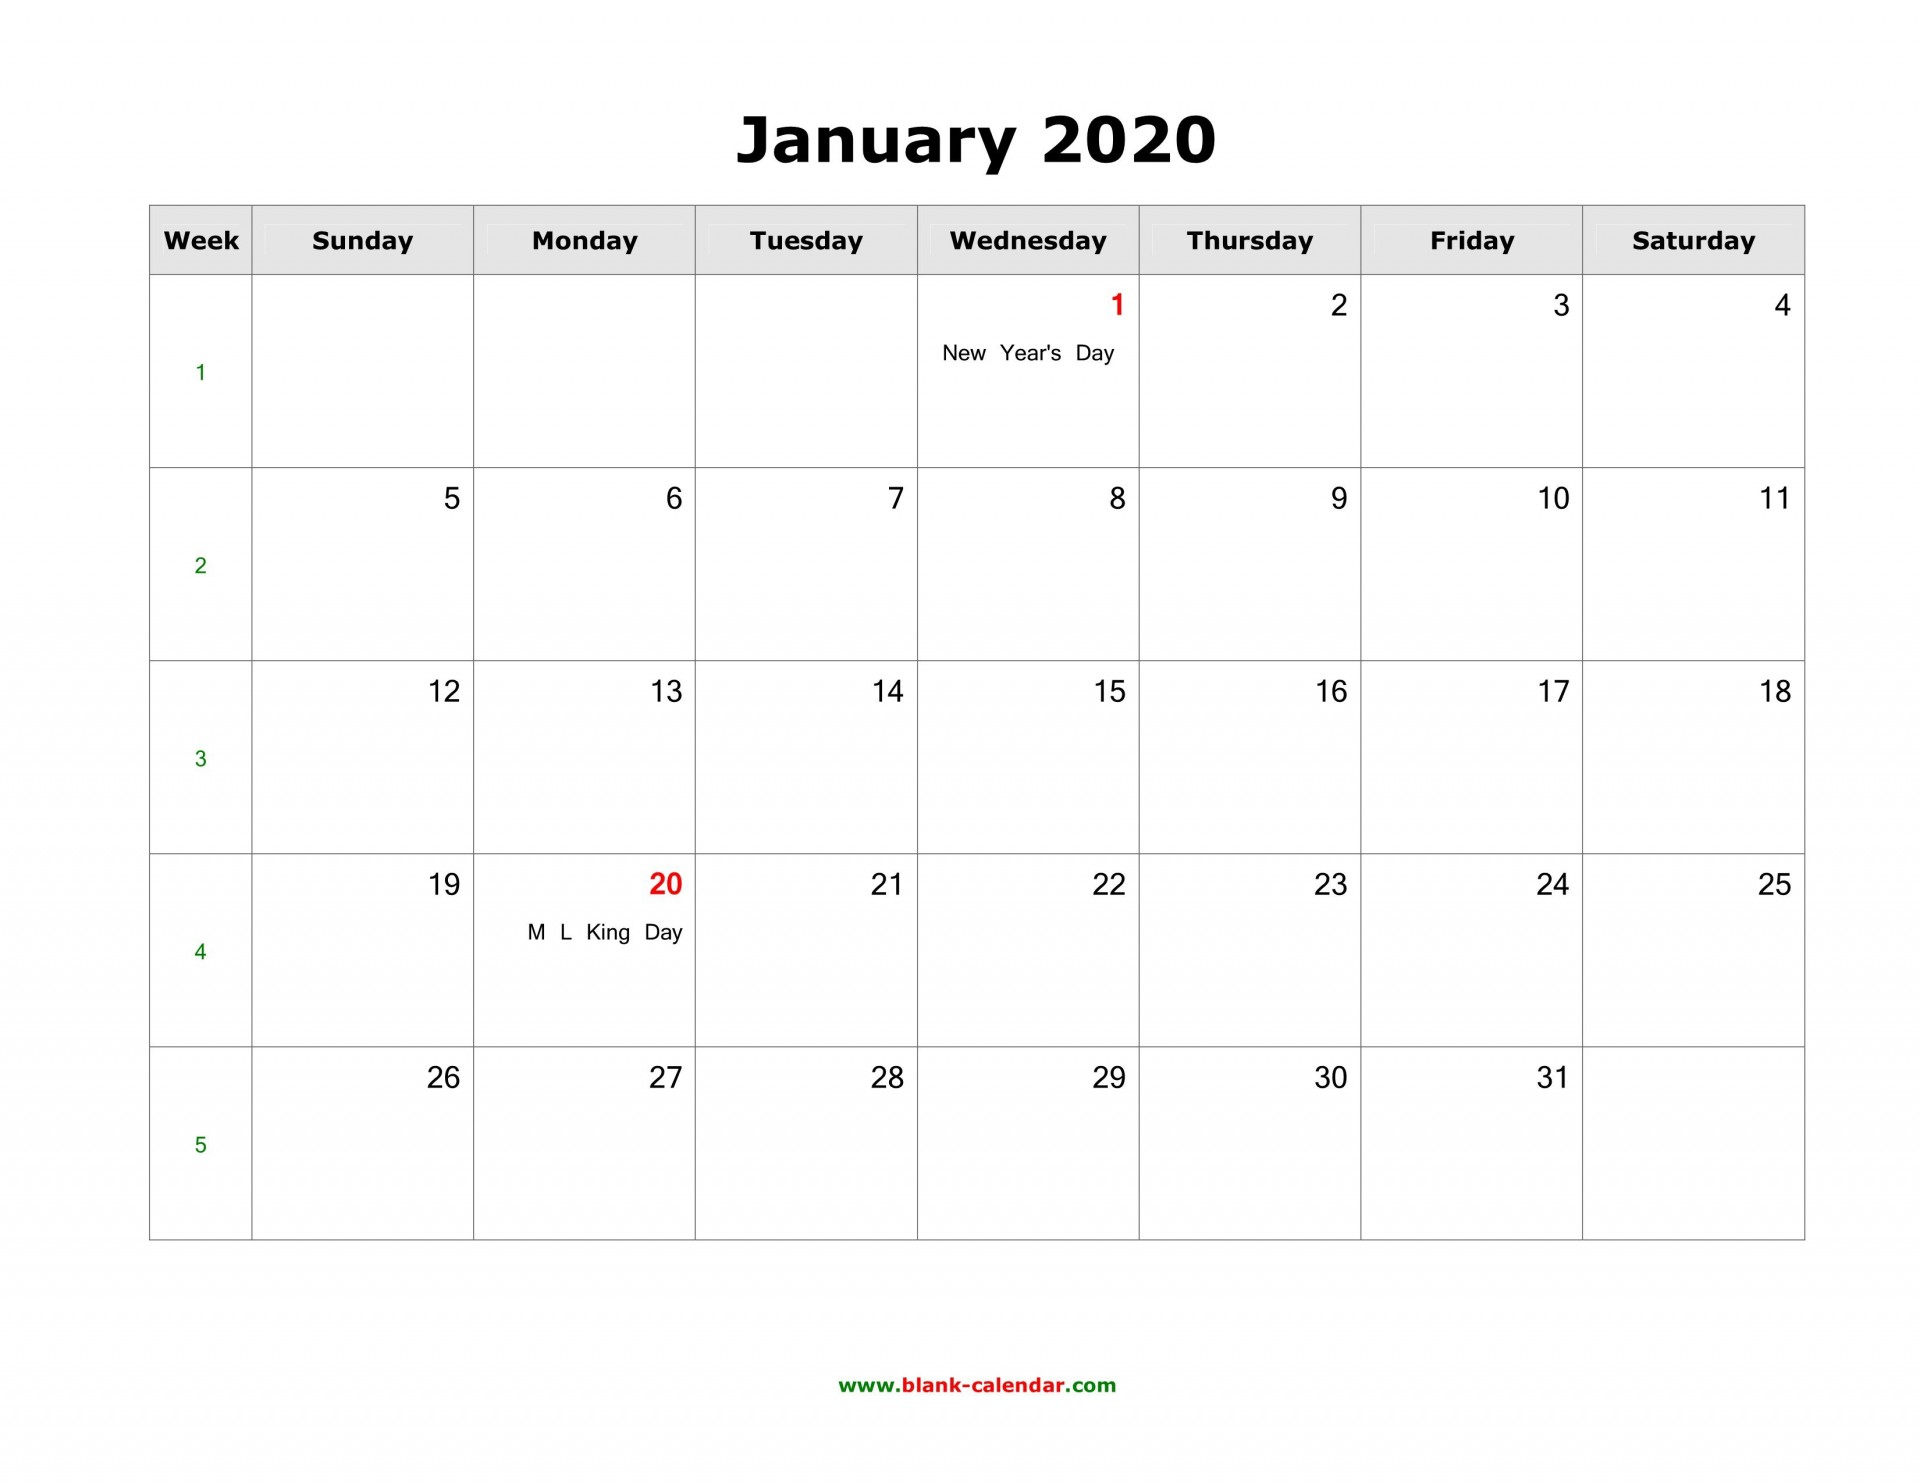 008 Fascinating 2020 Blank Calendar Template High Def  Printable Monthly Word Downloadable With Holiday1920